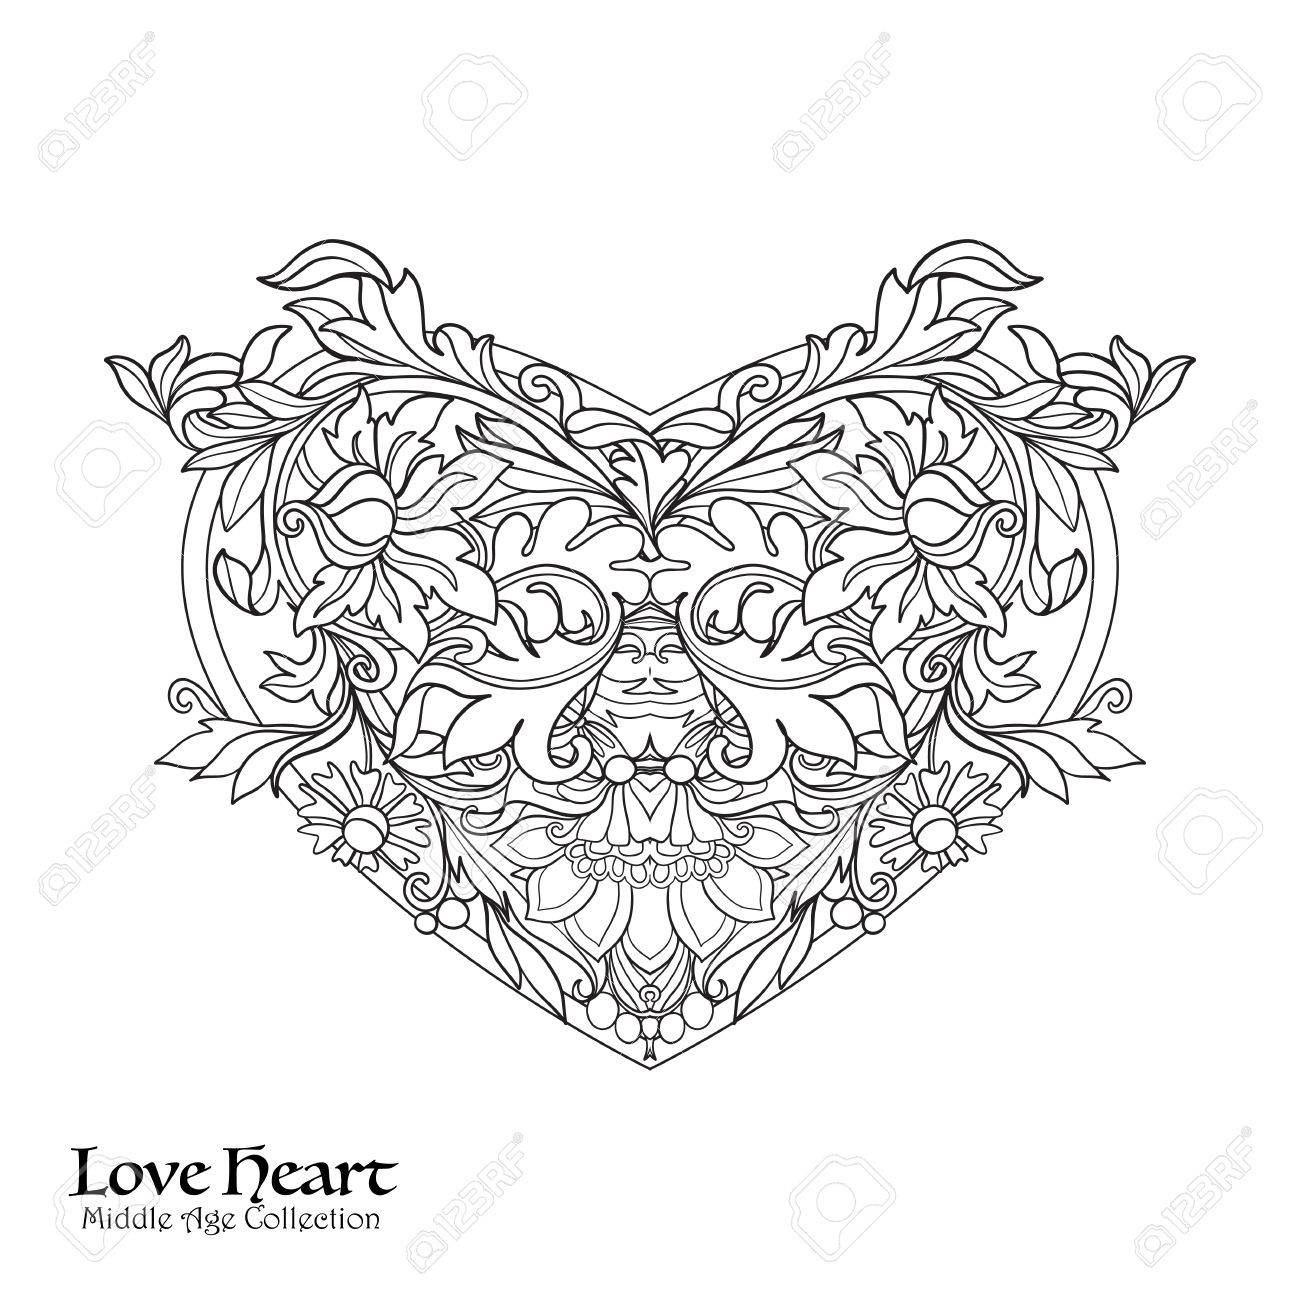 1300x1300 Decorative Love Heart In Rococo, Victorian, Renaissance, Baroque